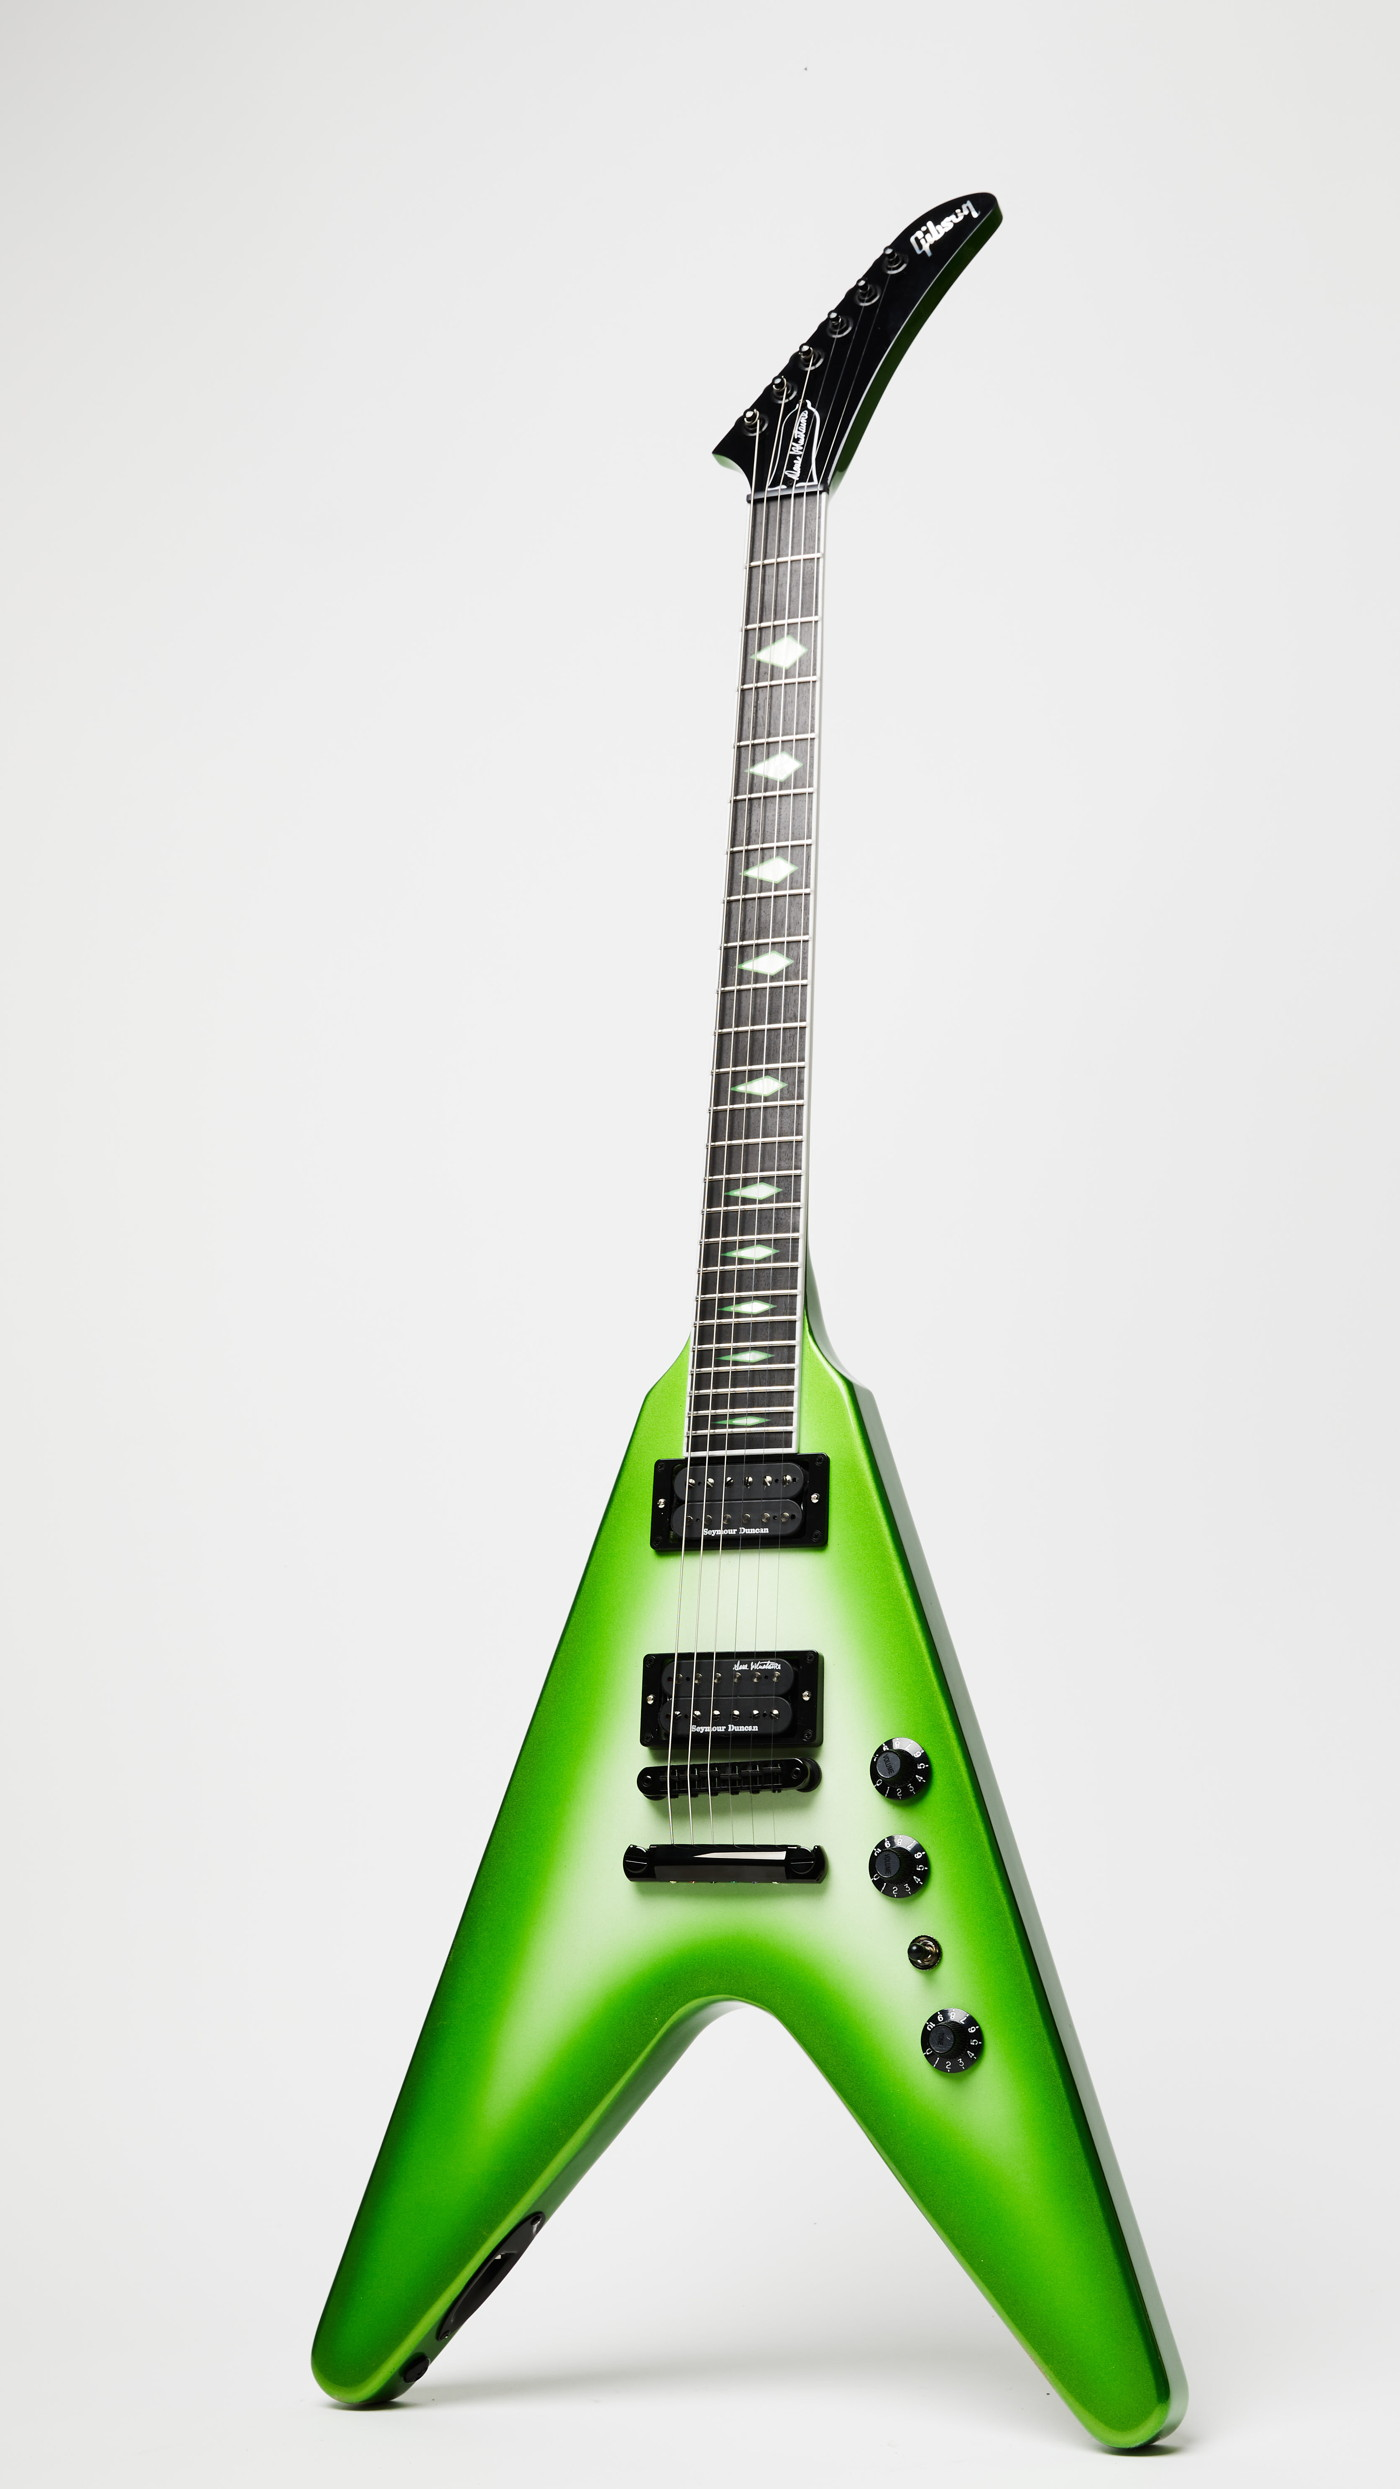 Gibson Dave Mustaine Flying V30th Anniversary 'Rust inPeace' Edition